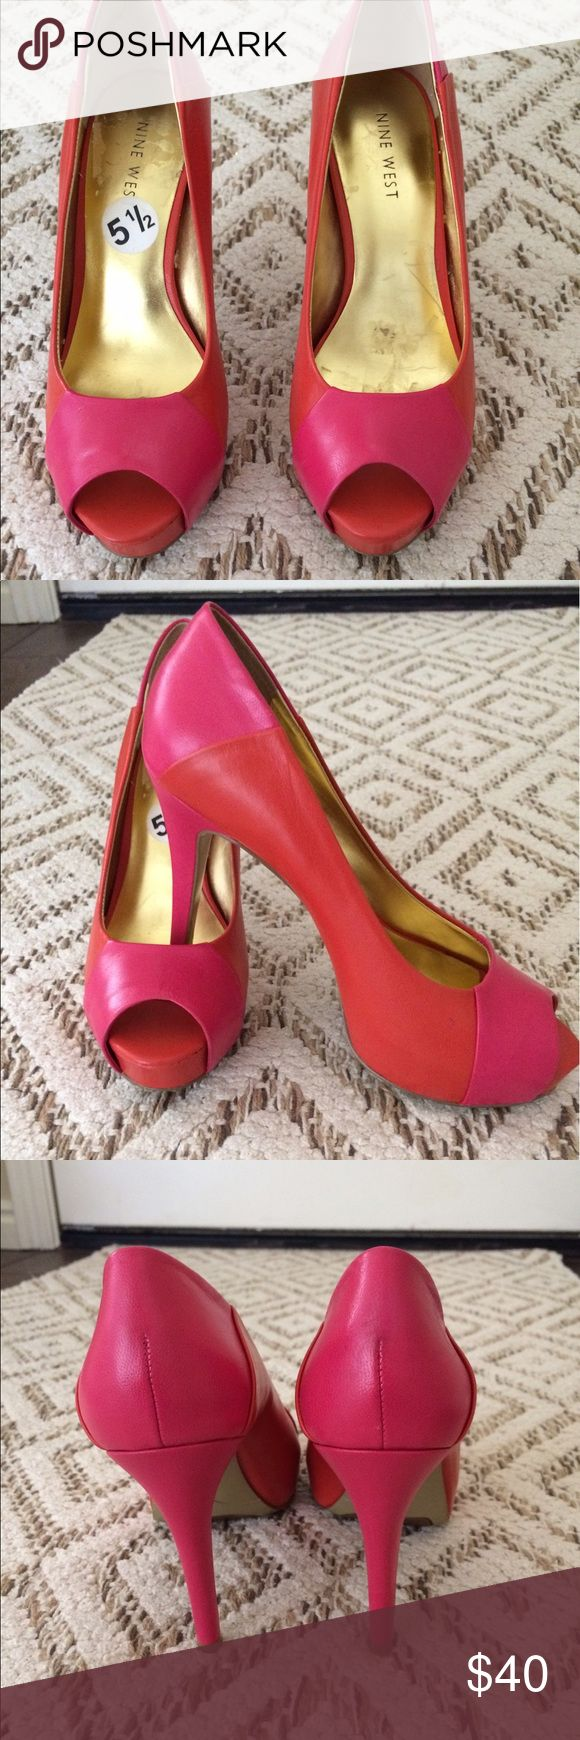 "Nine West shoes Pink and orange Nine West heels.  Perfect condition. No scratches. No stains. 4"" heel. 1/2"" platform. Nine West Shoes Heels"